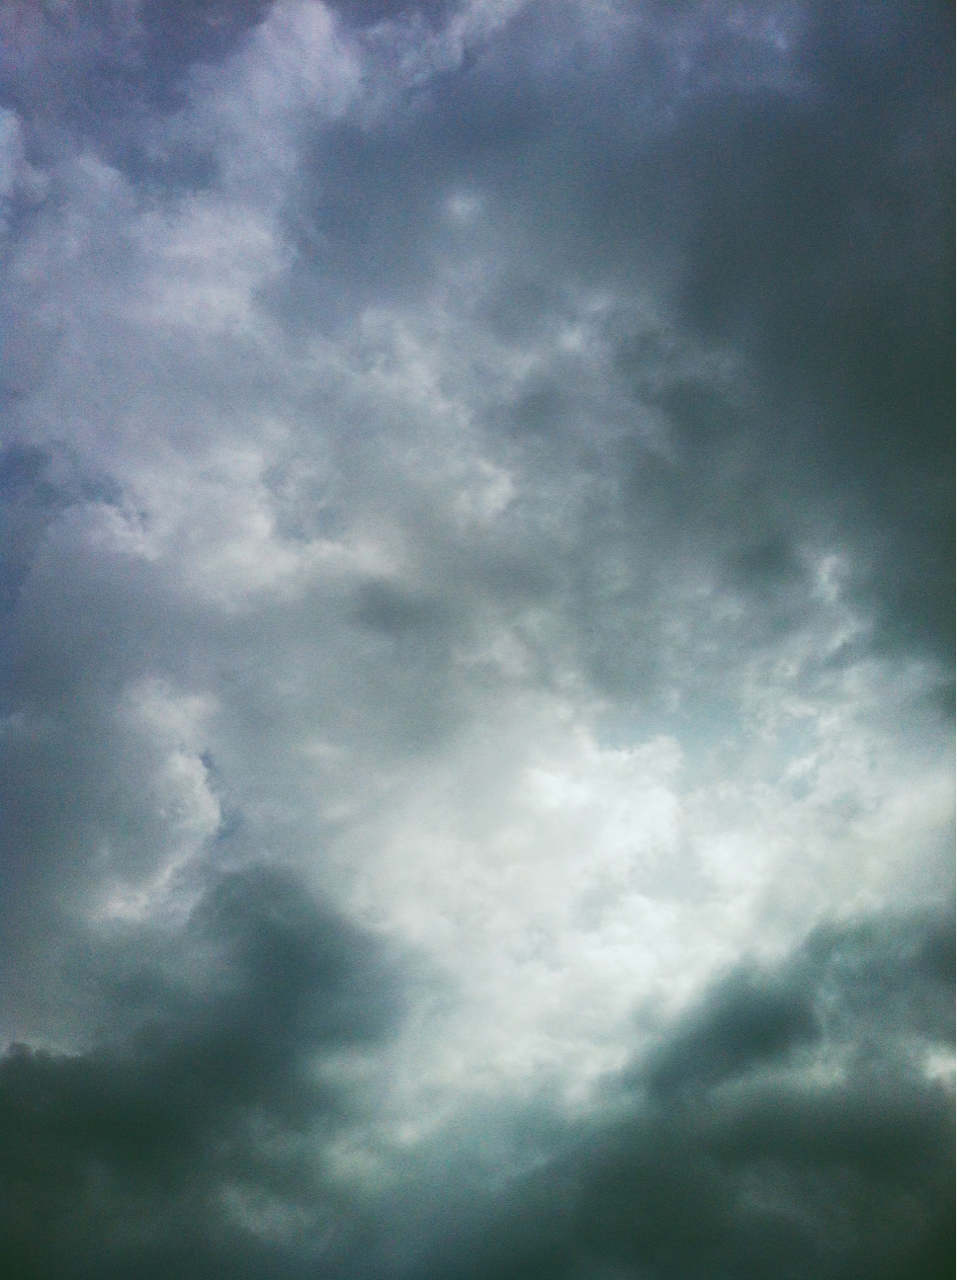 #rainy #cloudy #sun #emerging #skies